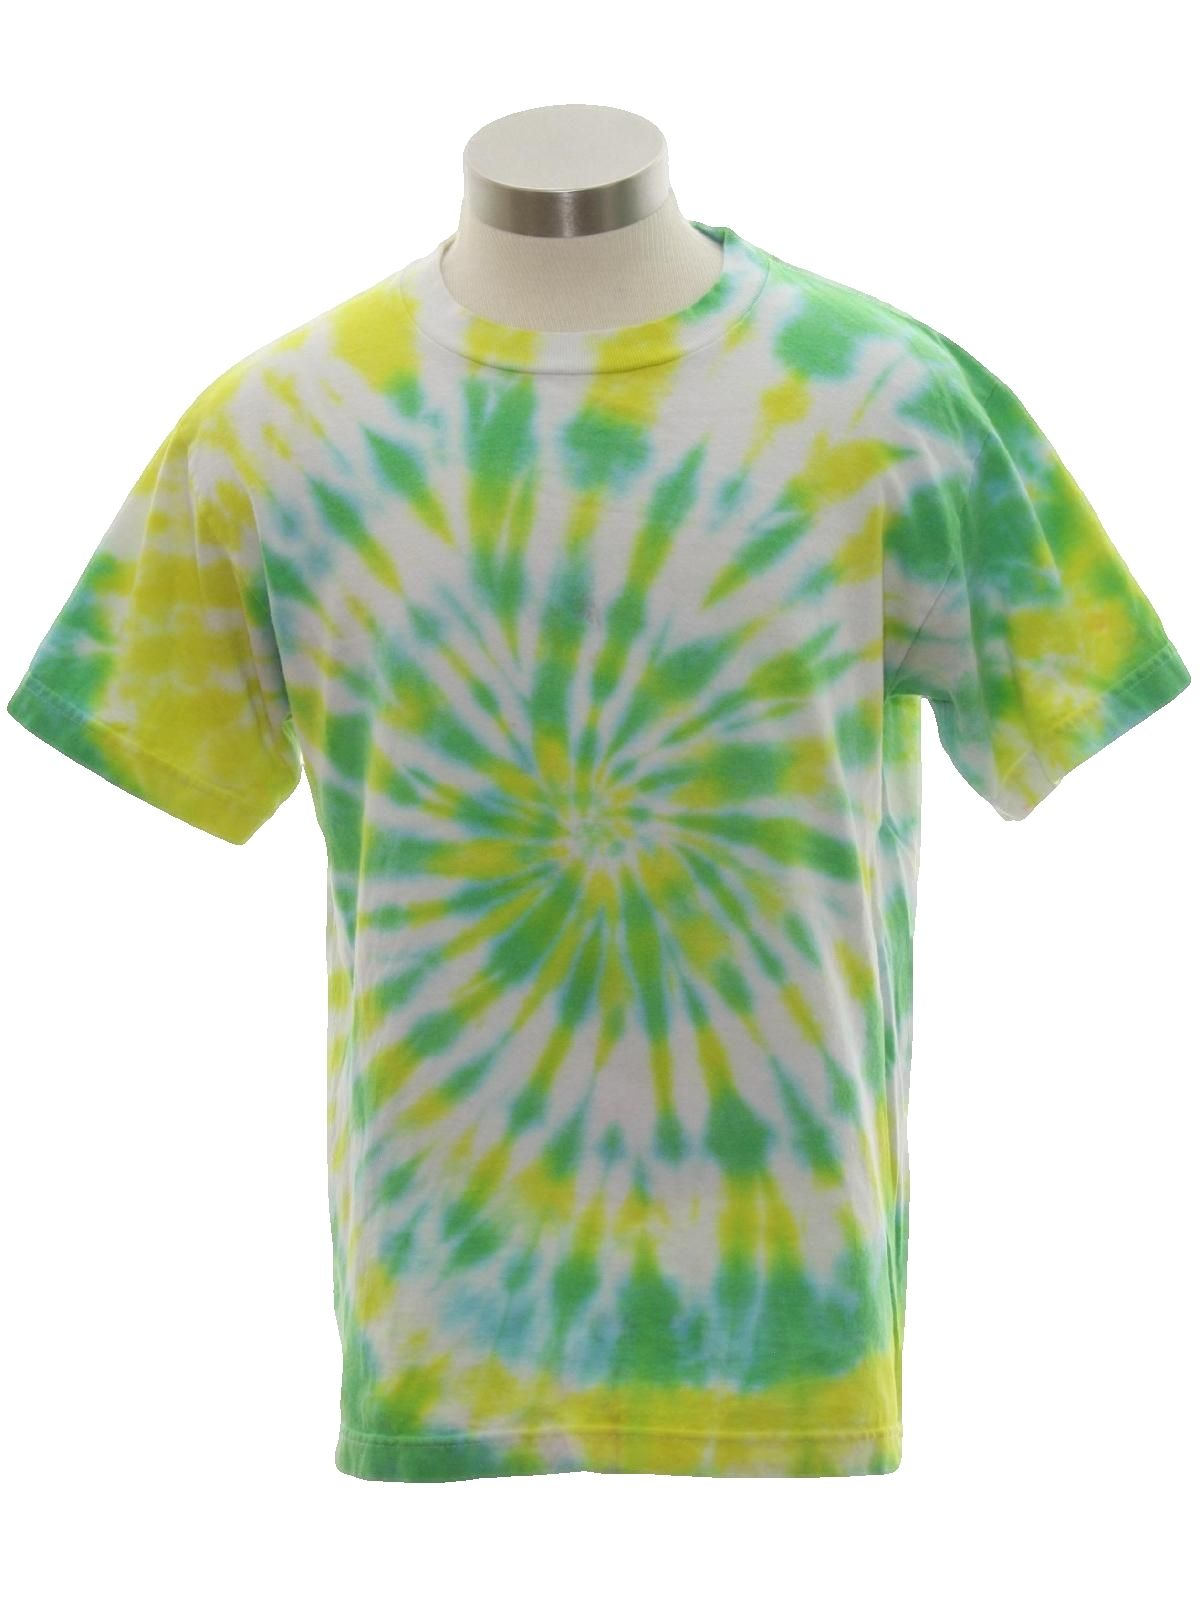 Nineties T Shirt  90s or Newer -No Label- Unisex White background cotton  70s style Tie Dye shortsleeve 636f1b280fd